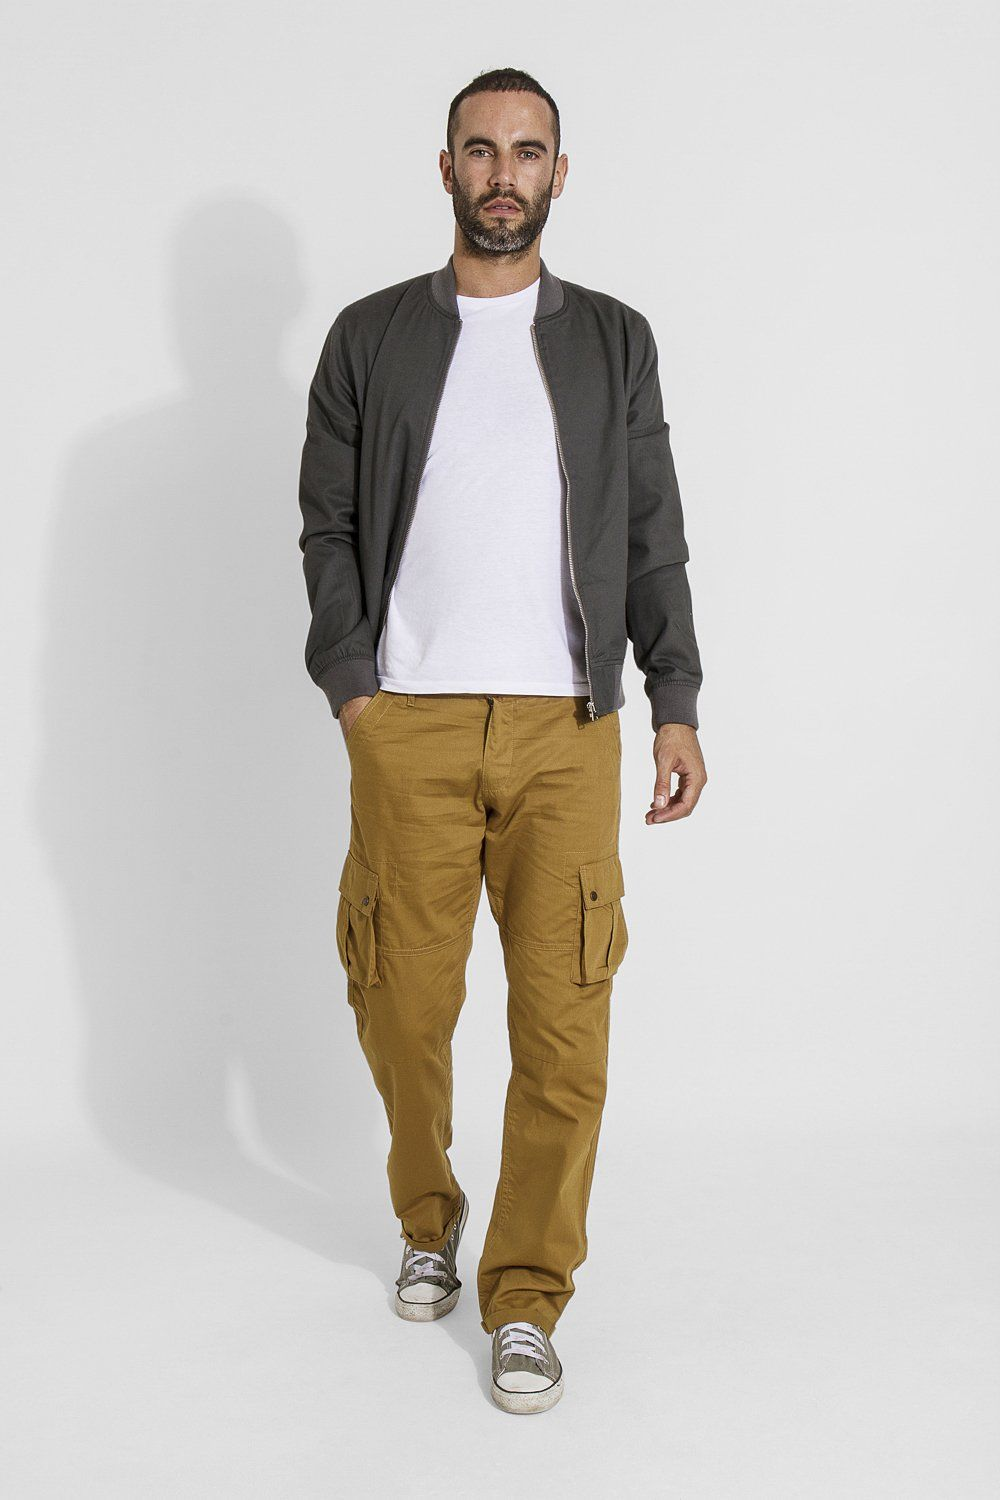 Firswood mens organic cotton loose fit cargo trousers